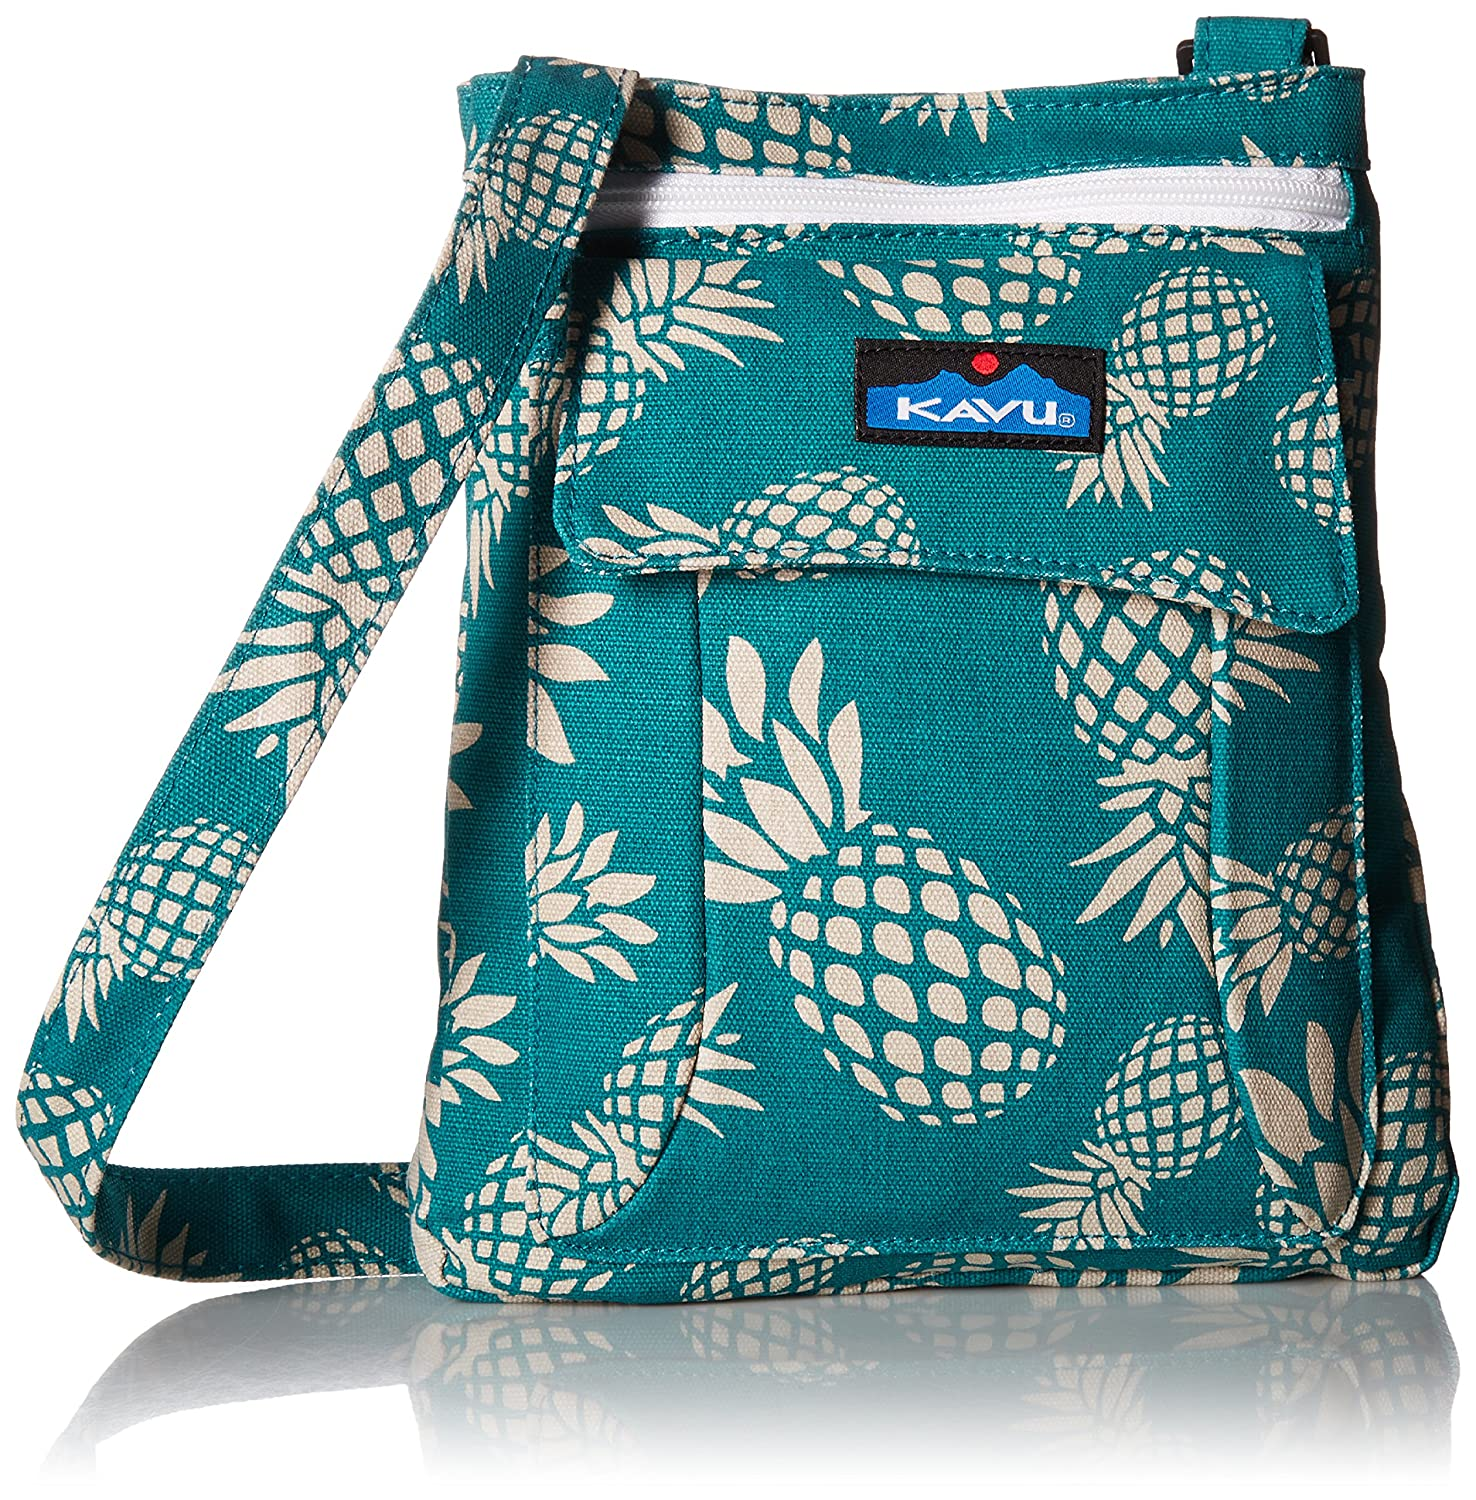 KAVU Keeper Coral One Size KAVU-Outdoors 917